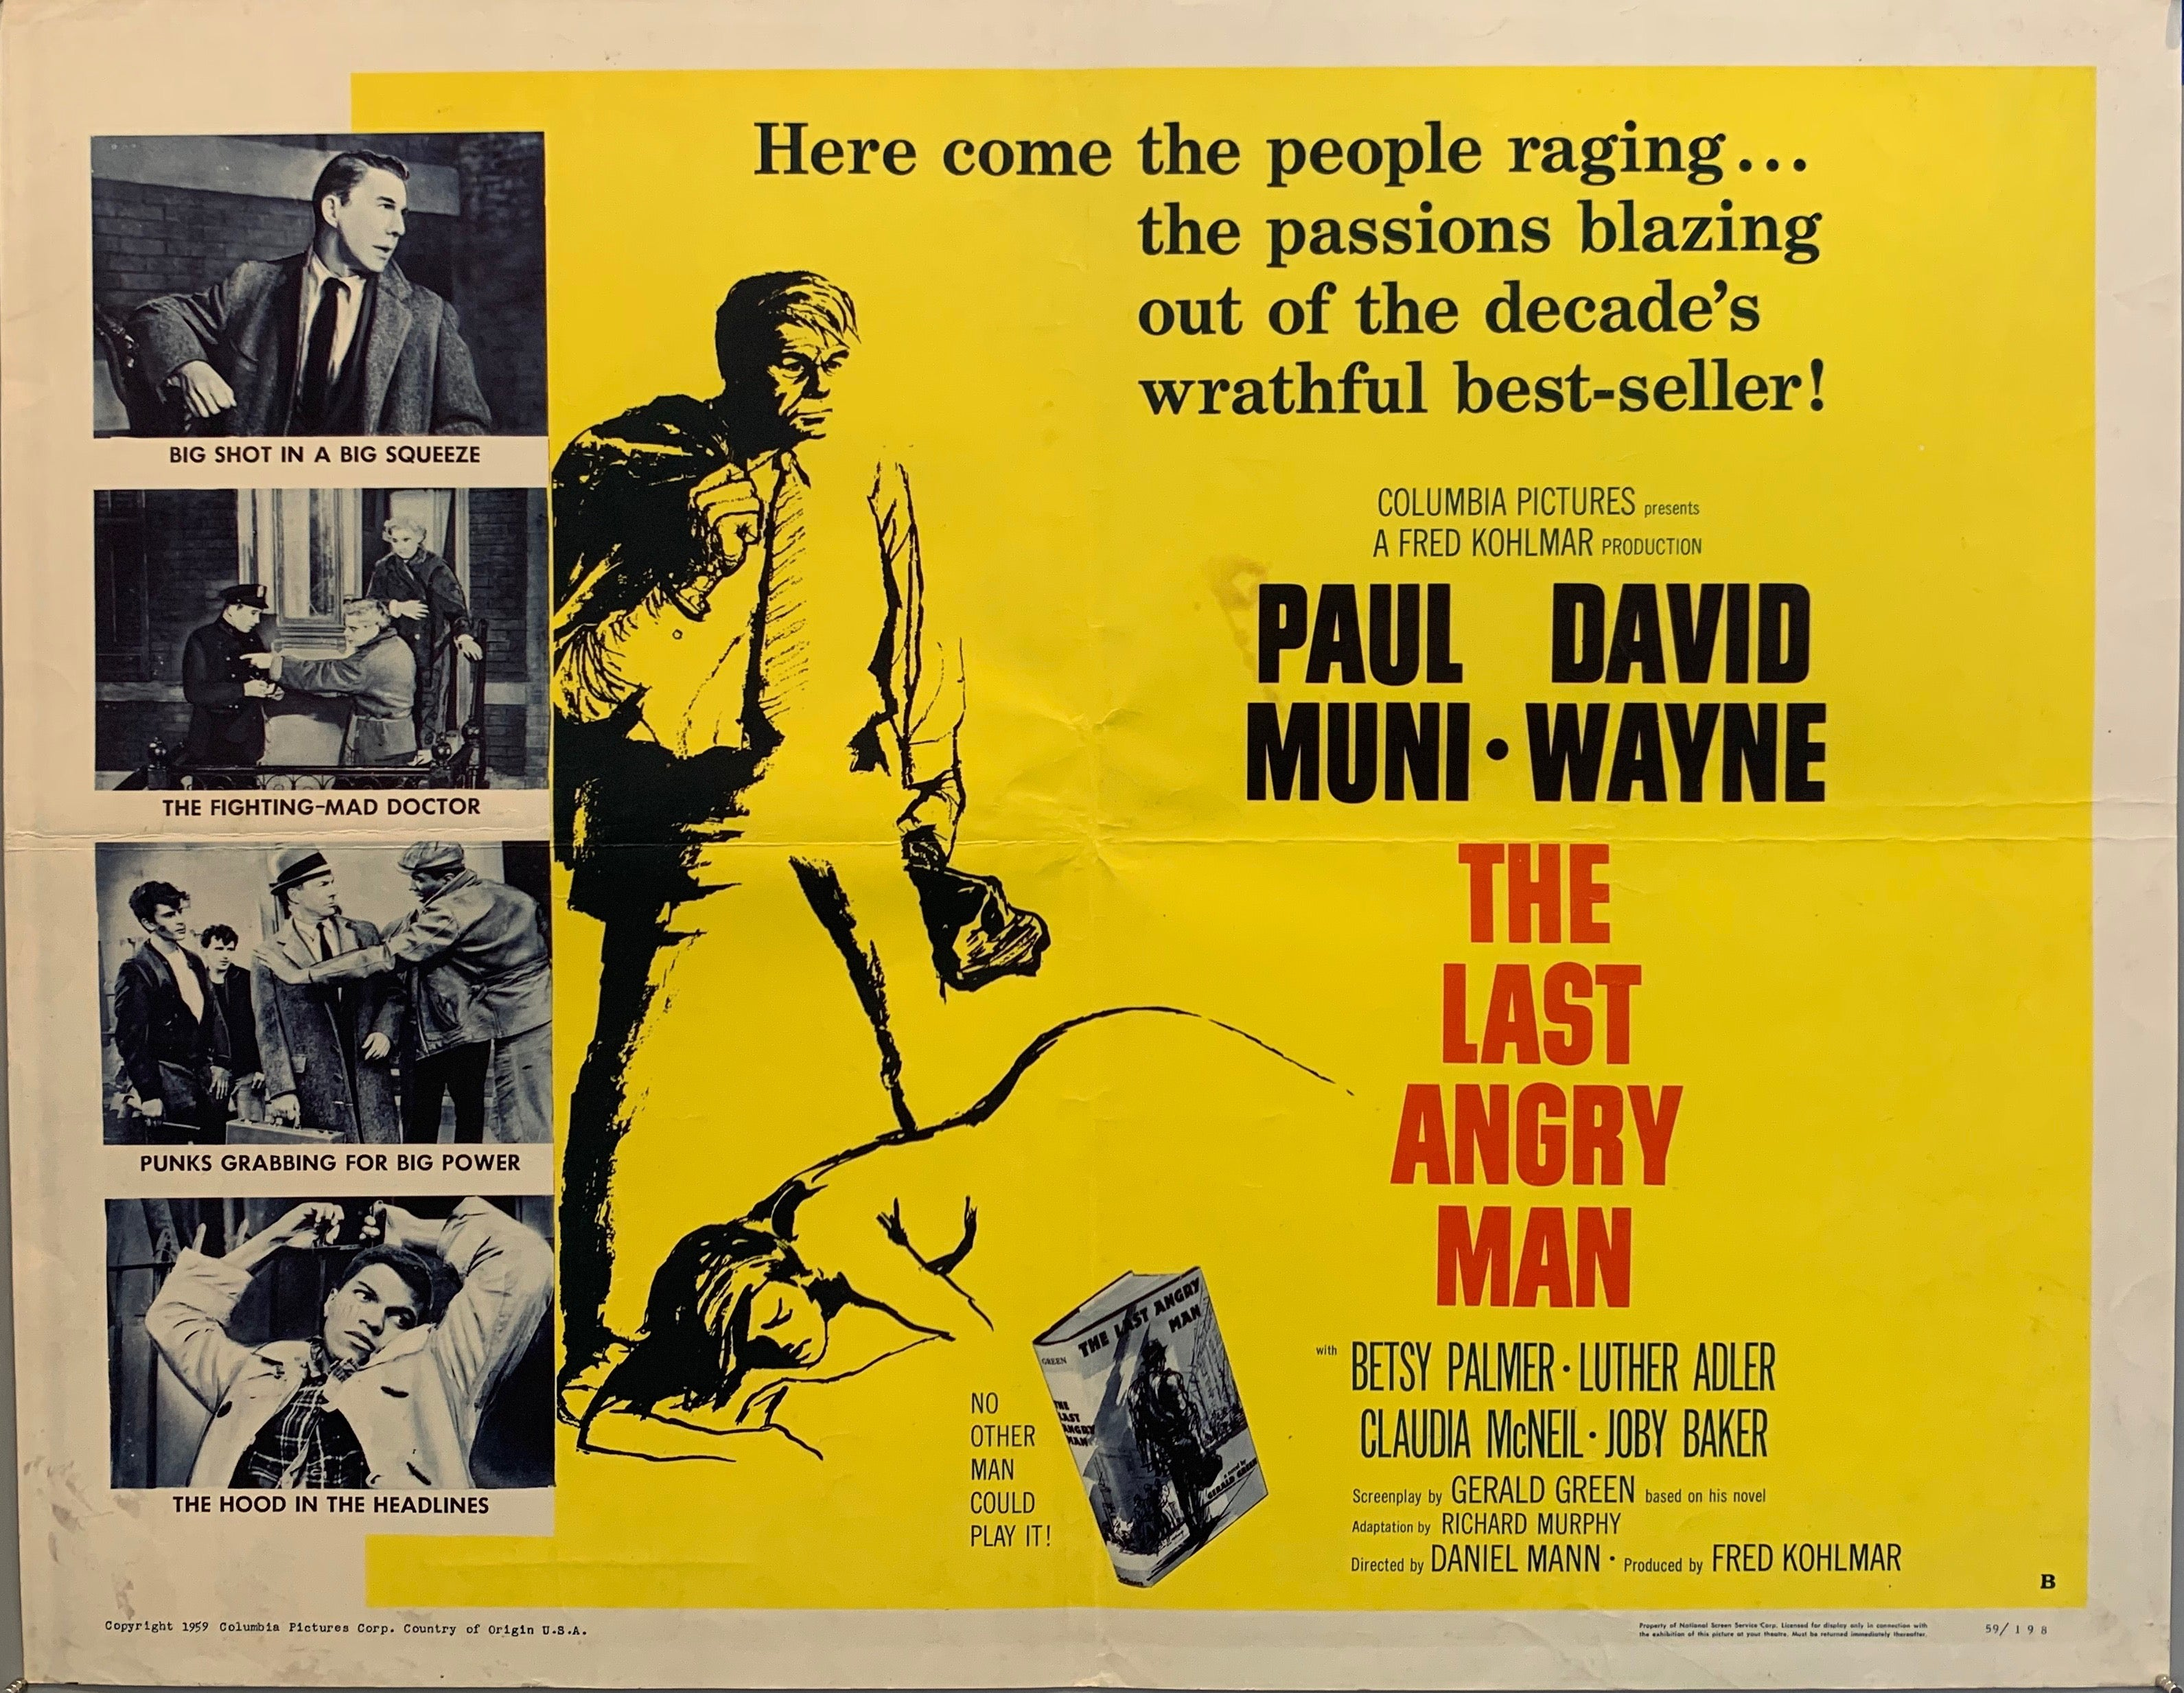 man in suit lying over sleeping naked woman the last angry man movie poster